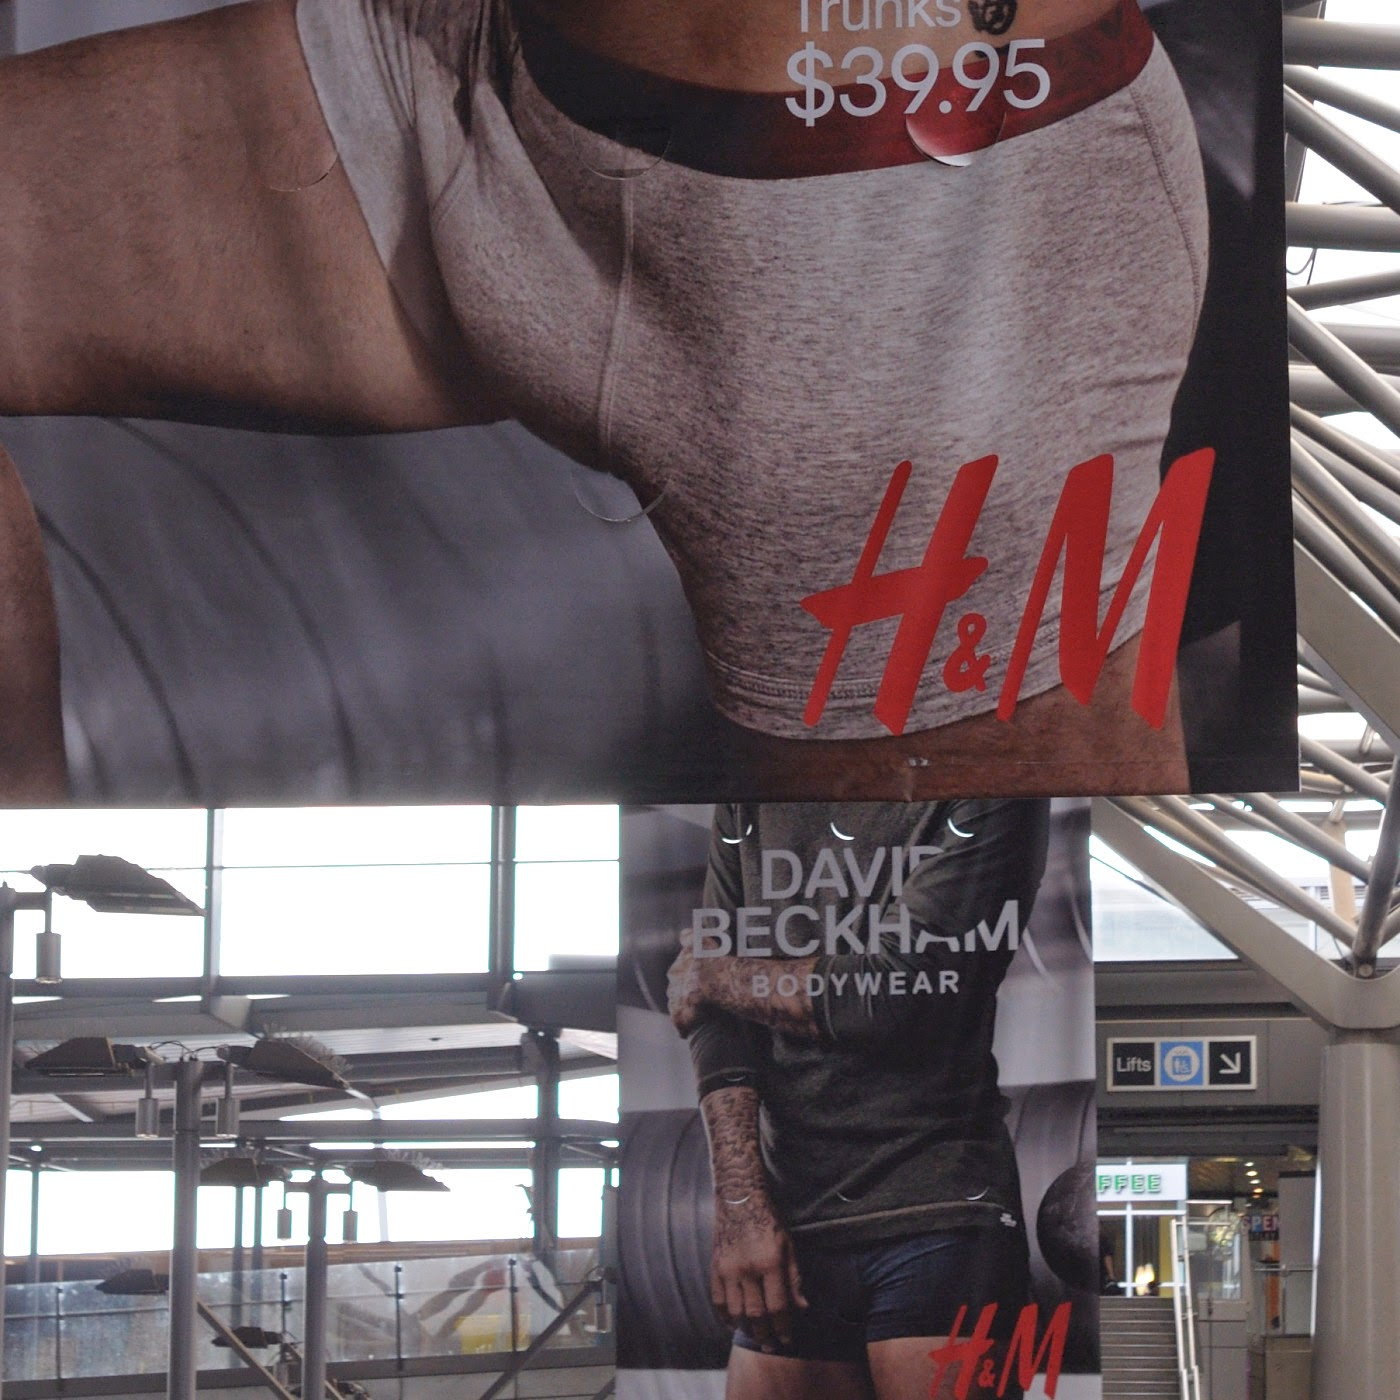 David beckham, david beckhams junk, H&M, bodywear, advertisement, double standard, objectification, crotch, groin, junk,  #davidbeckhamsjunk, tim macauley, photographic series, photographic  art,